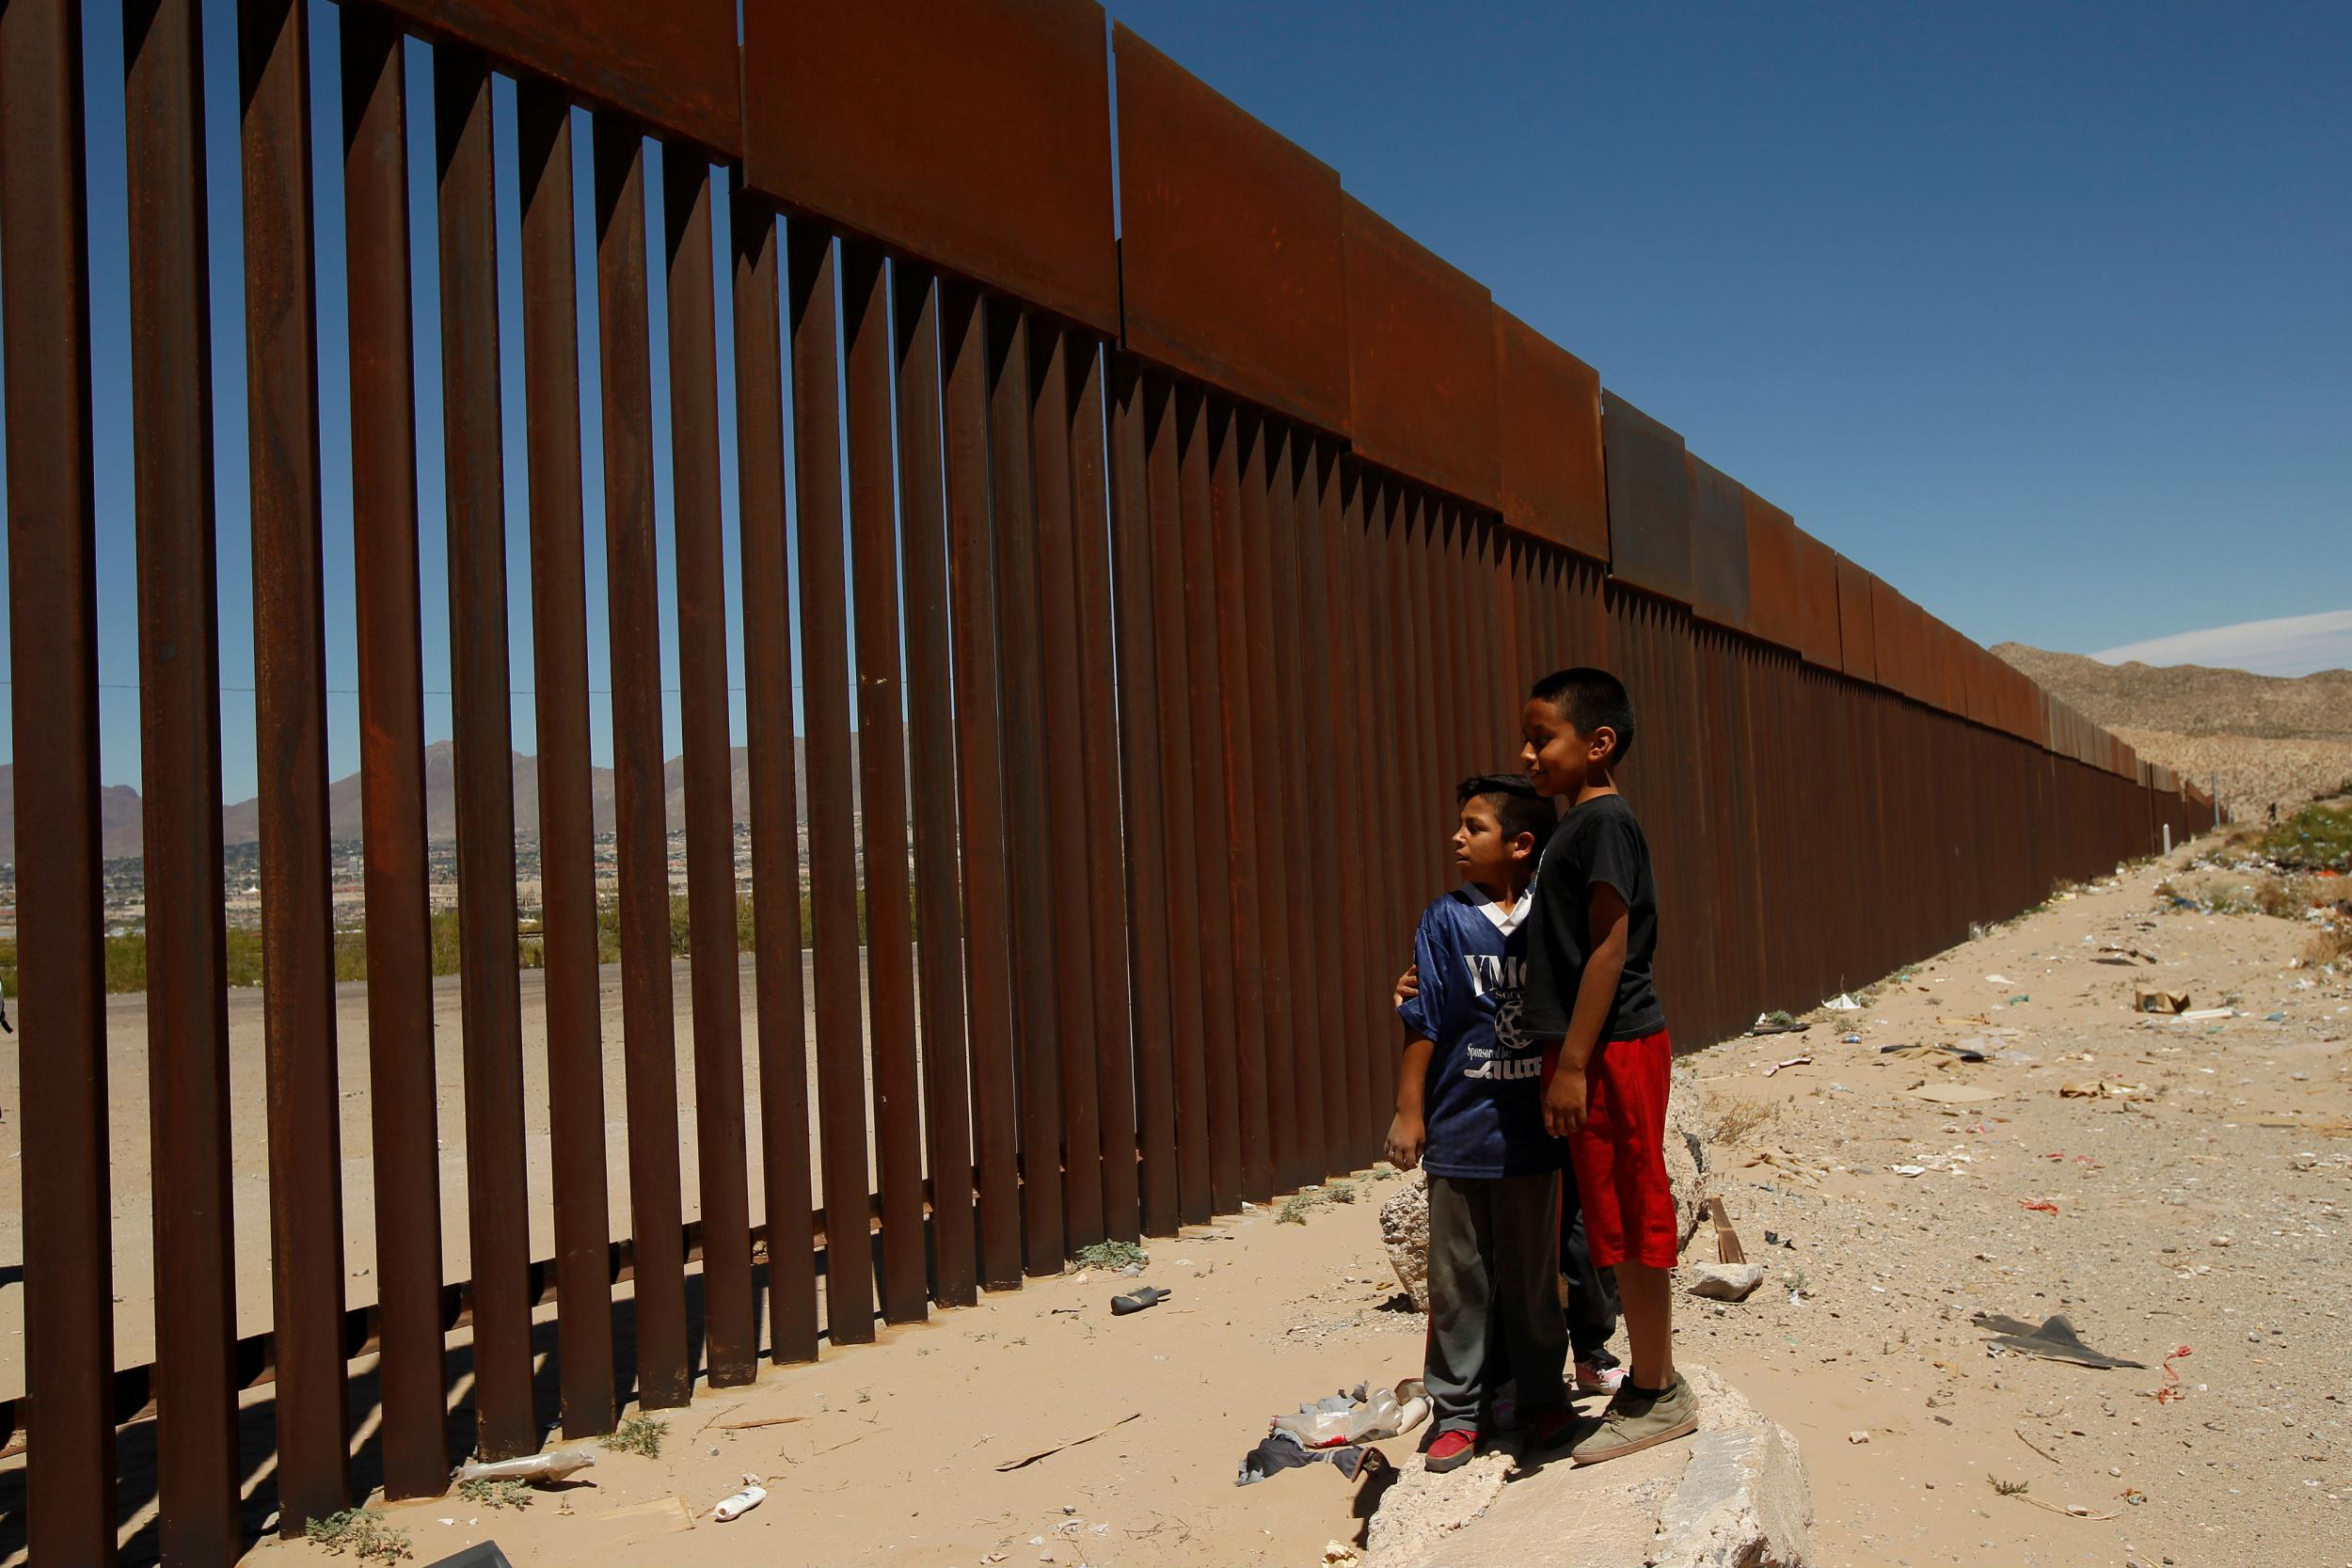 History will never let Donald Trump escape the shame of separating parents and children at the border